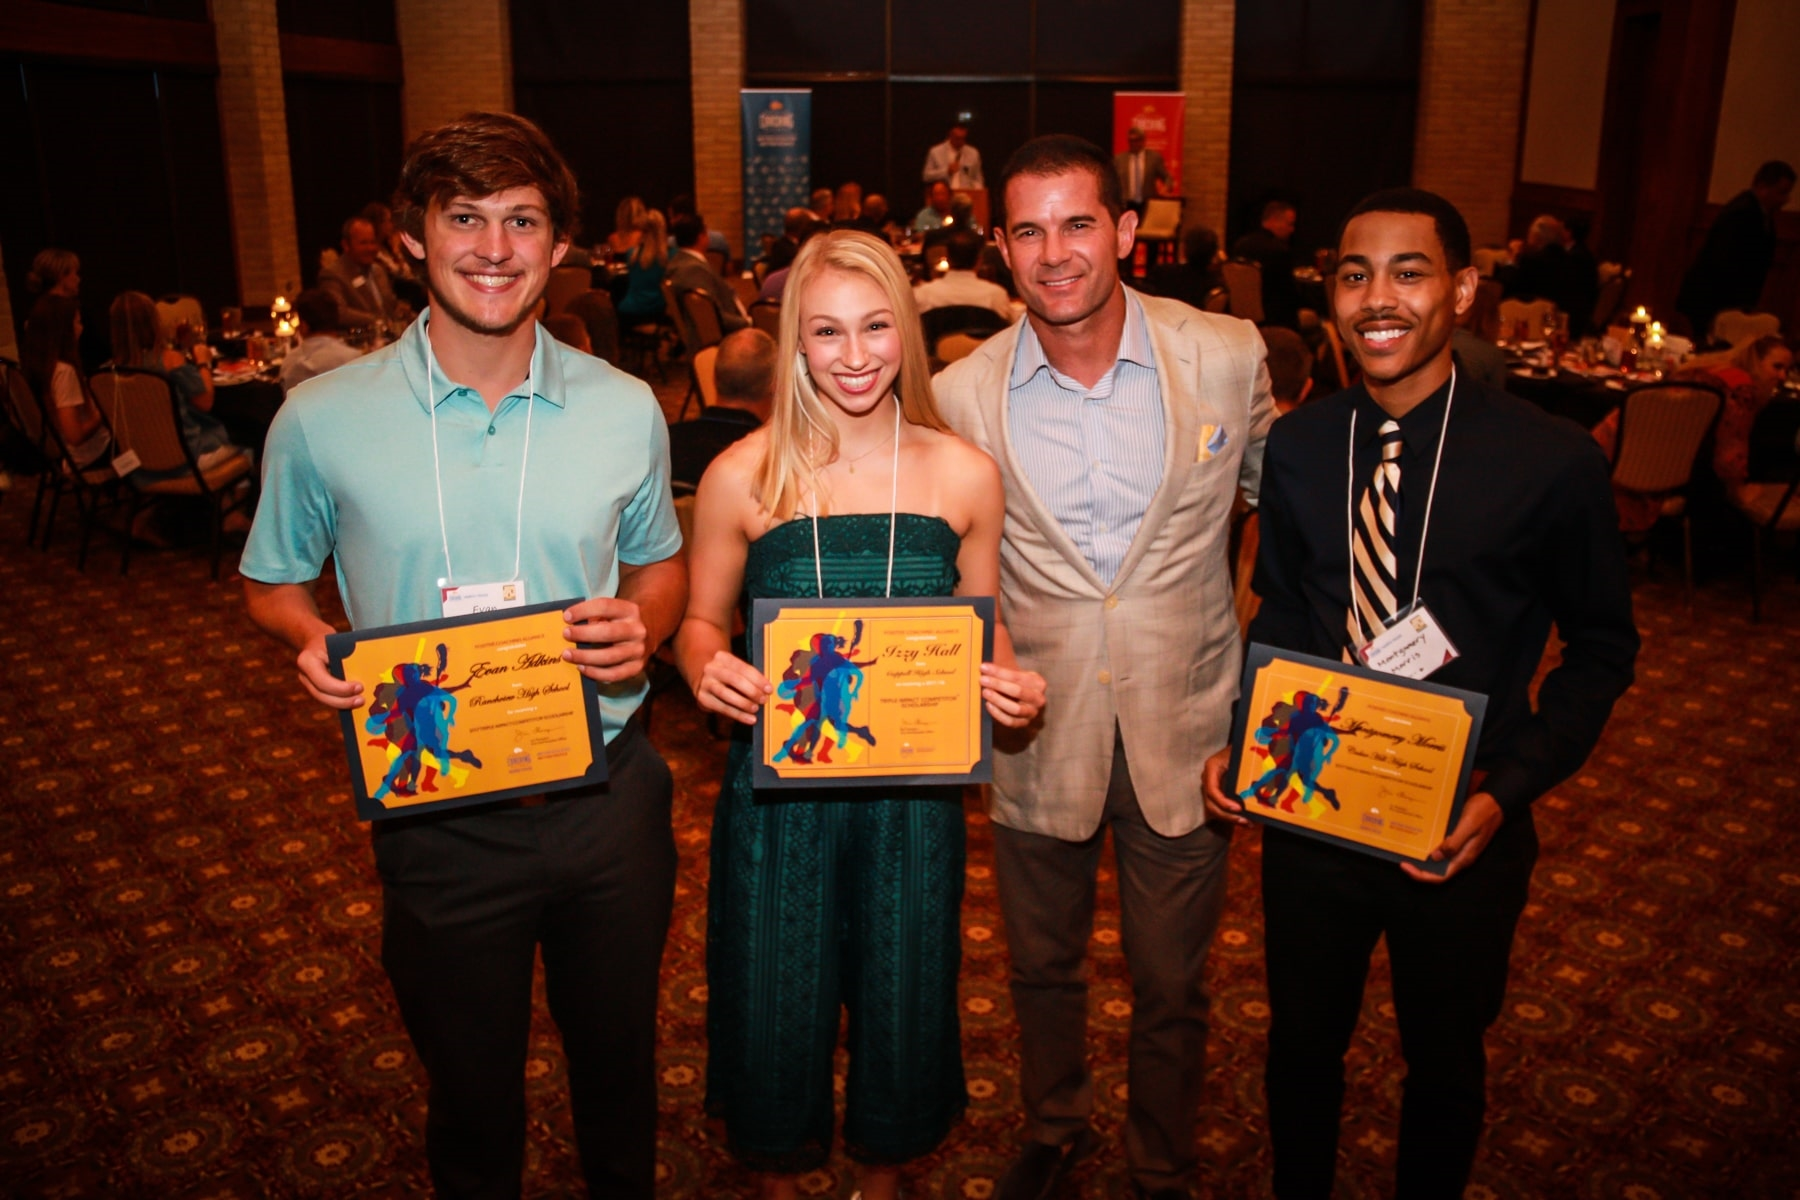 Former Texas Rangers Shortsop and 5x All-Star Michael Young with Scholarship Recipients